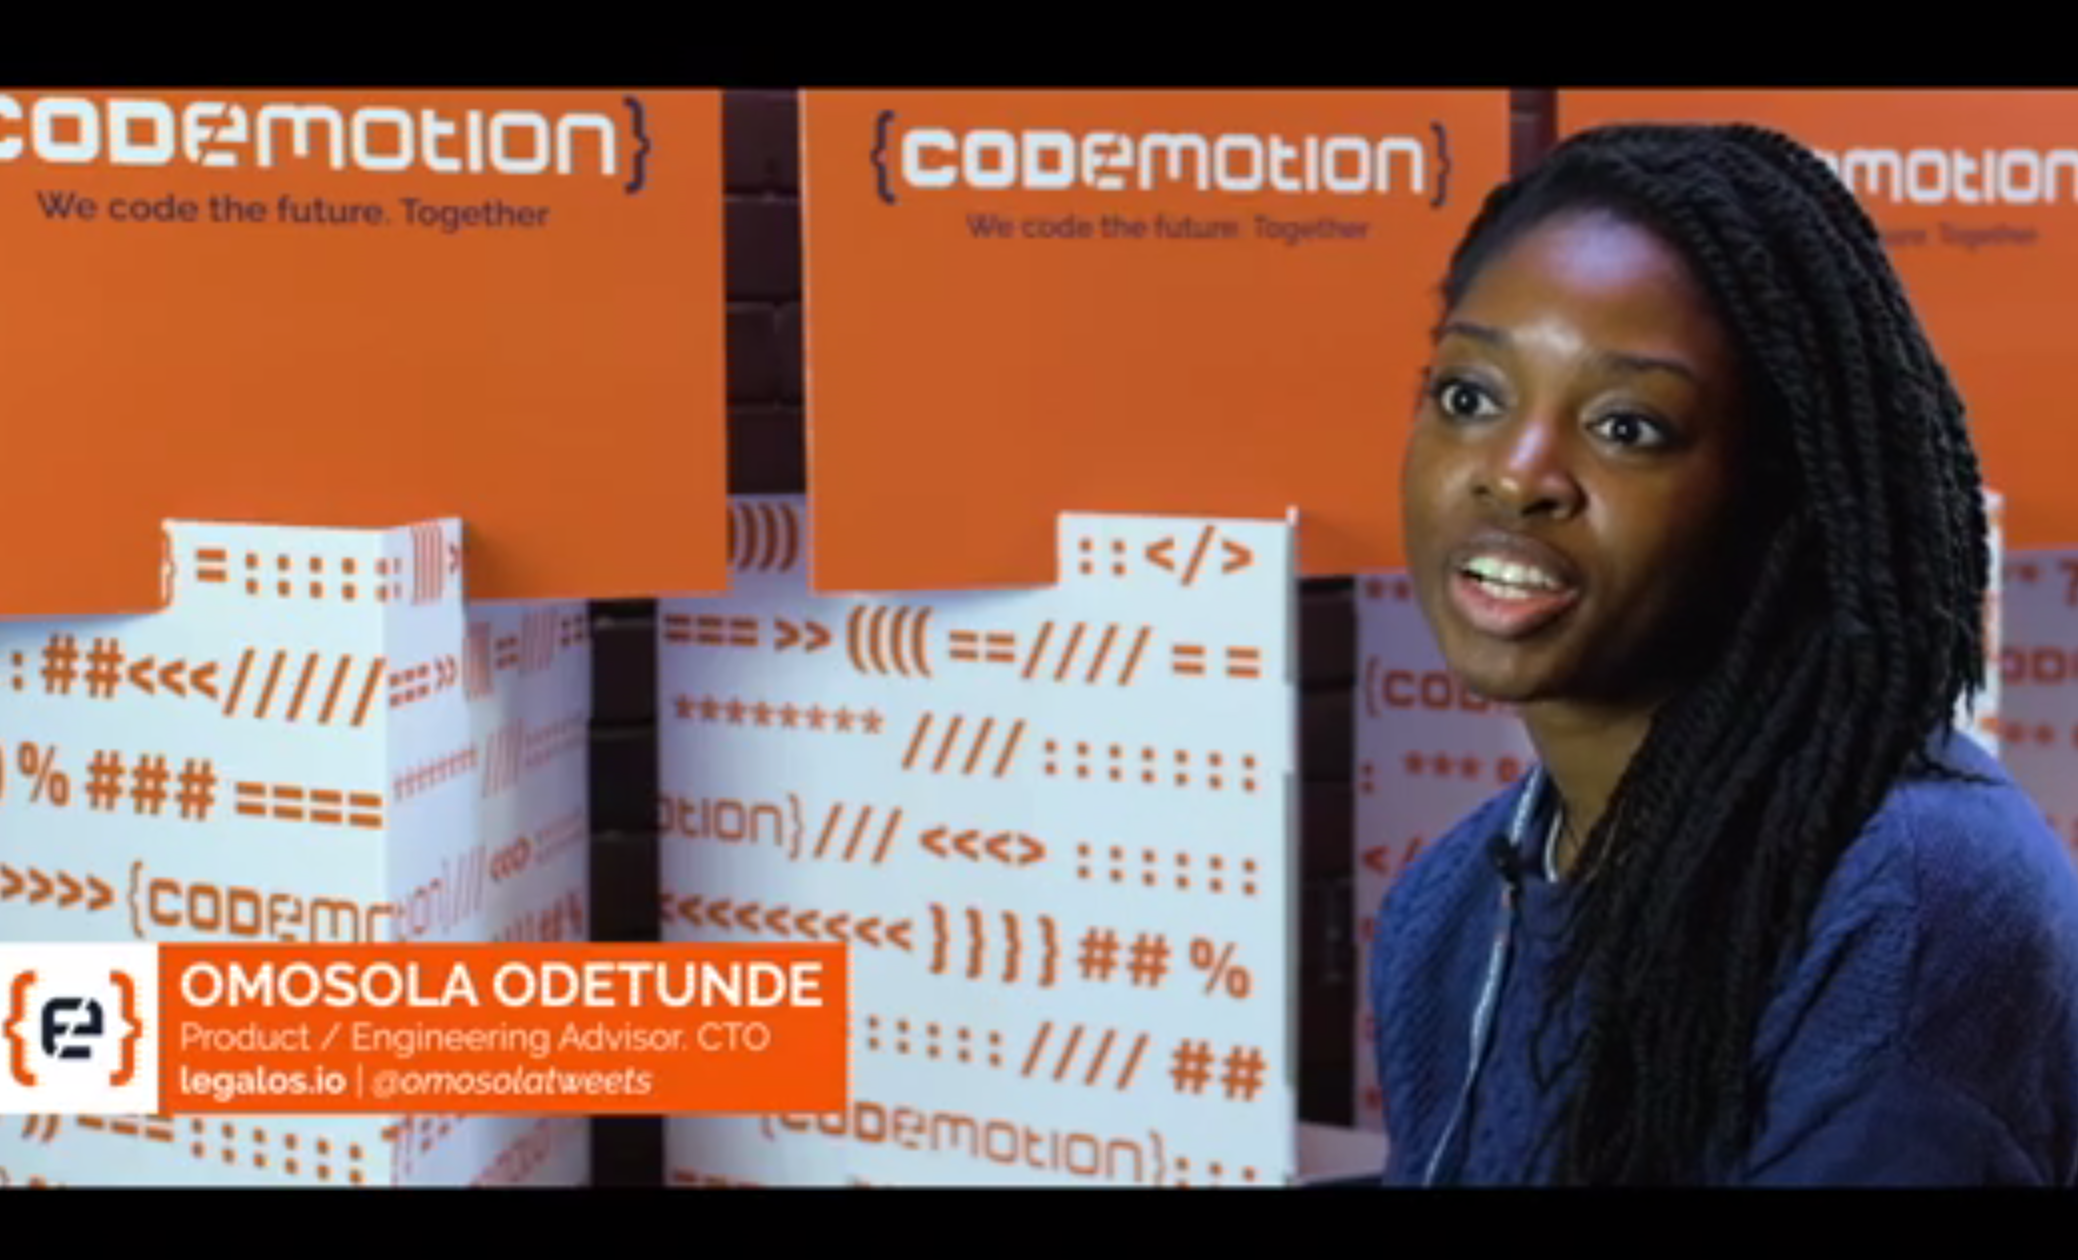 CODEMOTION BERLIN - Written up in CodeMotion's magazine discussing responsible AI/ML from a CTO perspective.Creating a culture of responsibility: interview with Omosola OdetundeMarch 2019 (recorded November 2018)